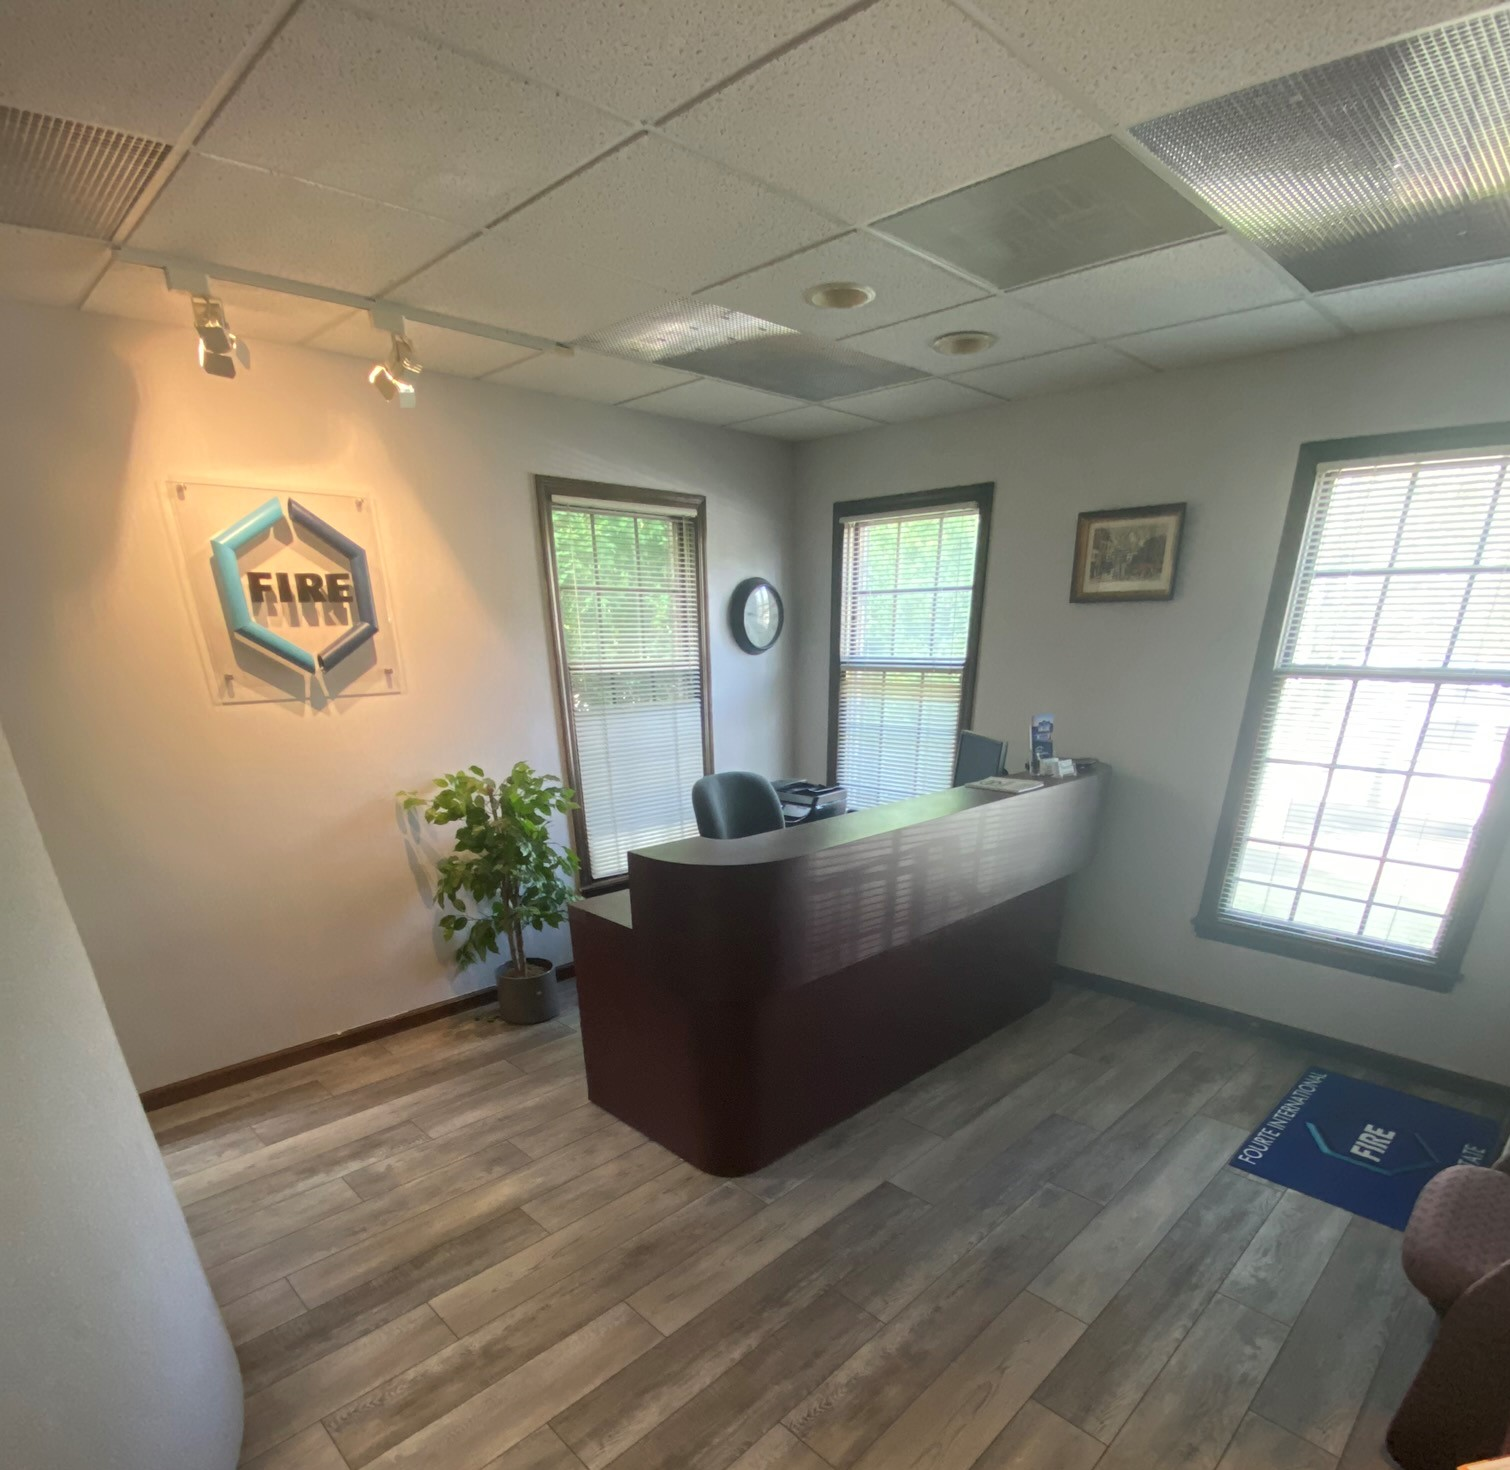 Lobby of Fourte International Real Estate's Headquarters building at 212 Pompton Avenue, Verona, New Jersey where home sellers, home buyers and property owners engage the services of New Jersey Real Estate Broker and New Jersey Attorney Michael Fourte.